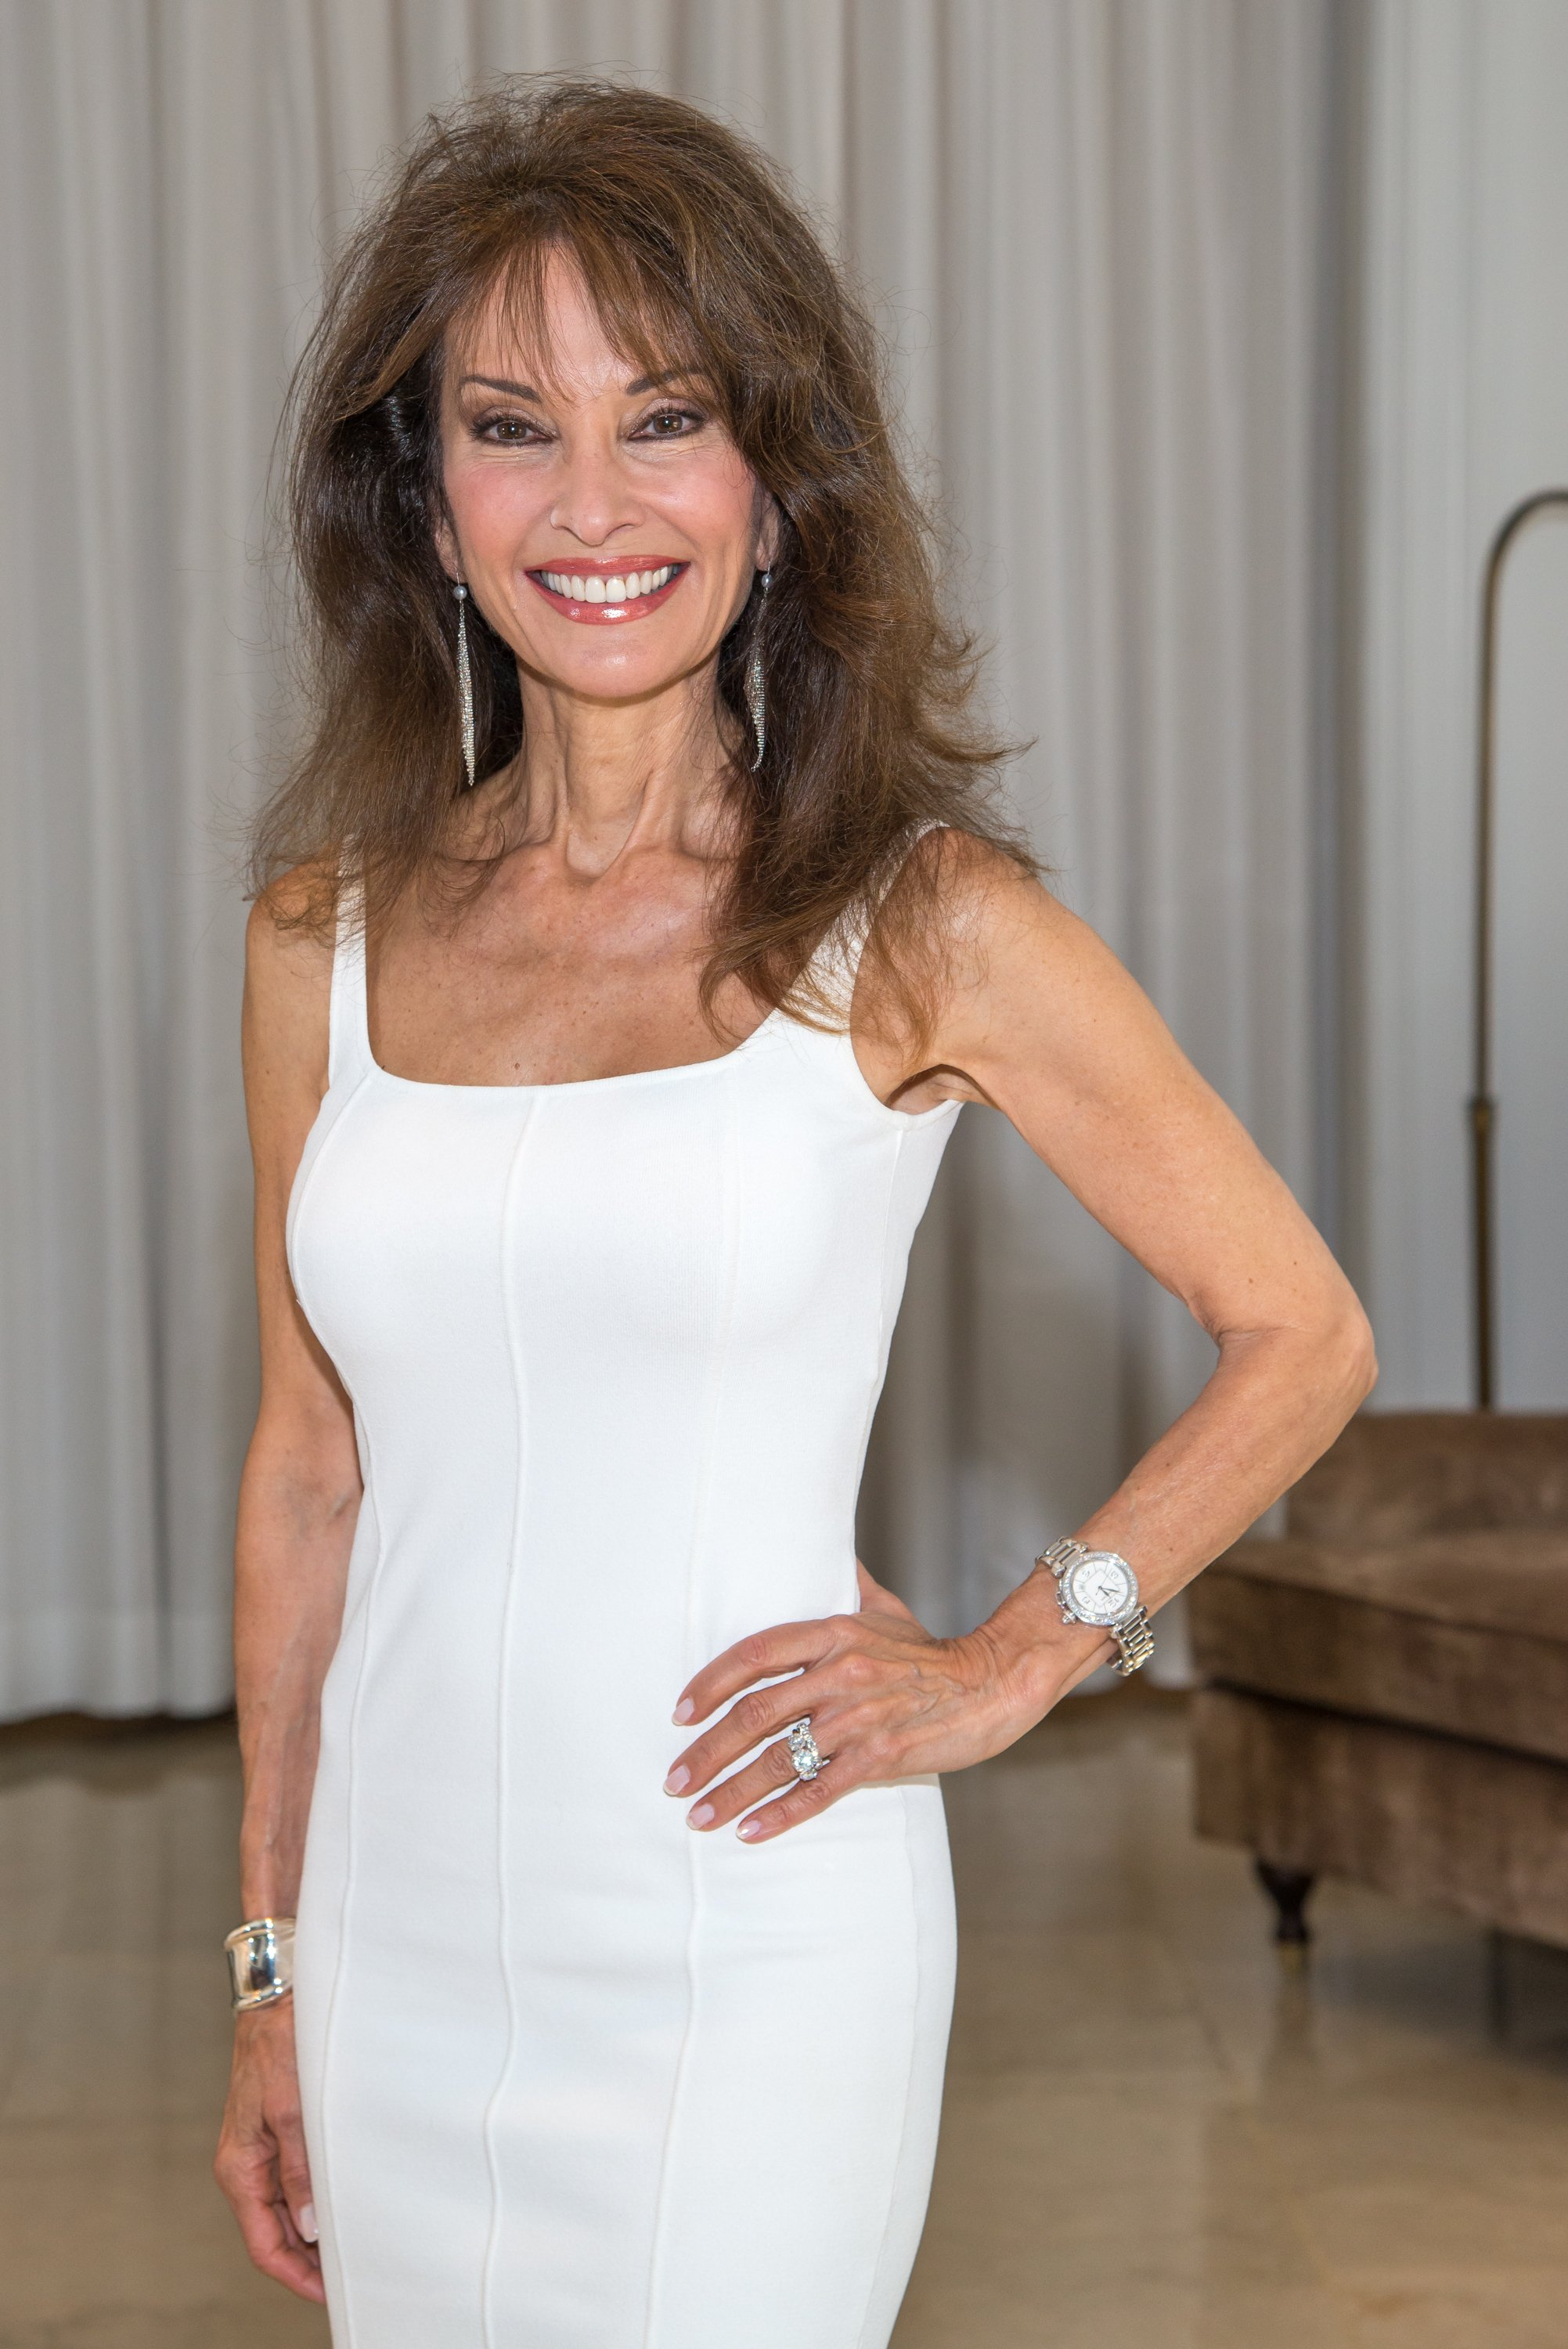 Susan Lucci attends The Garden City Hotel 140th Anniversary Celebration at Garden City Hotel on July 30, 2014 in Garden City, New York | Photo: Getty Images